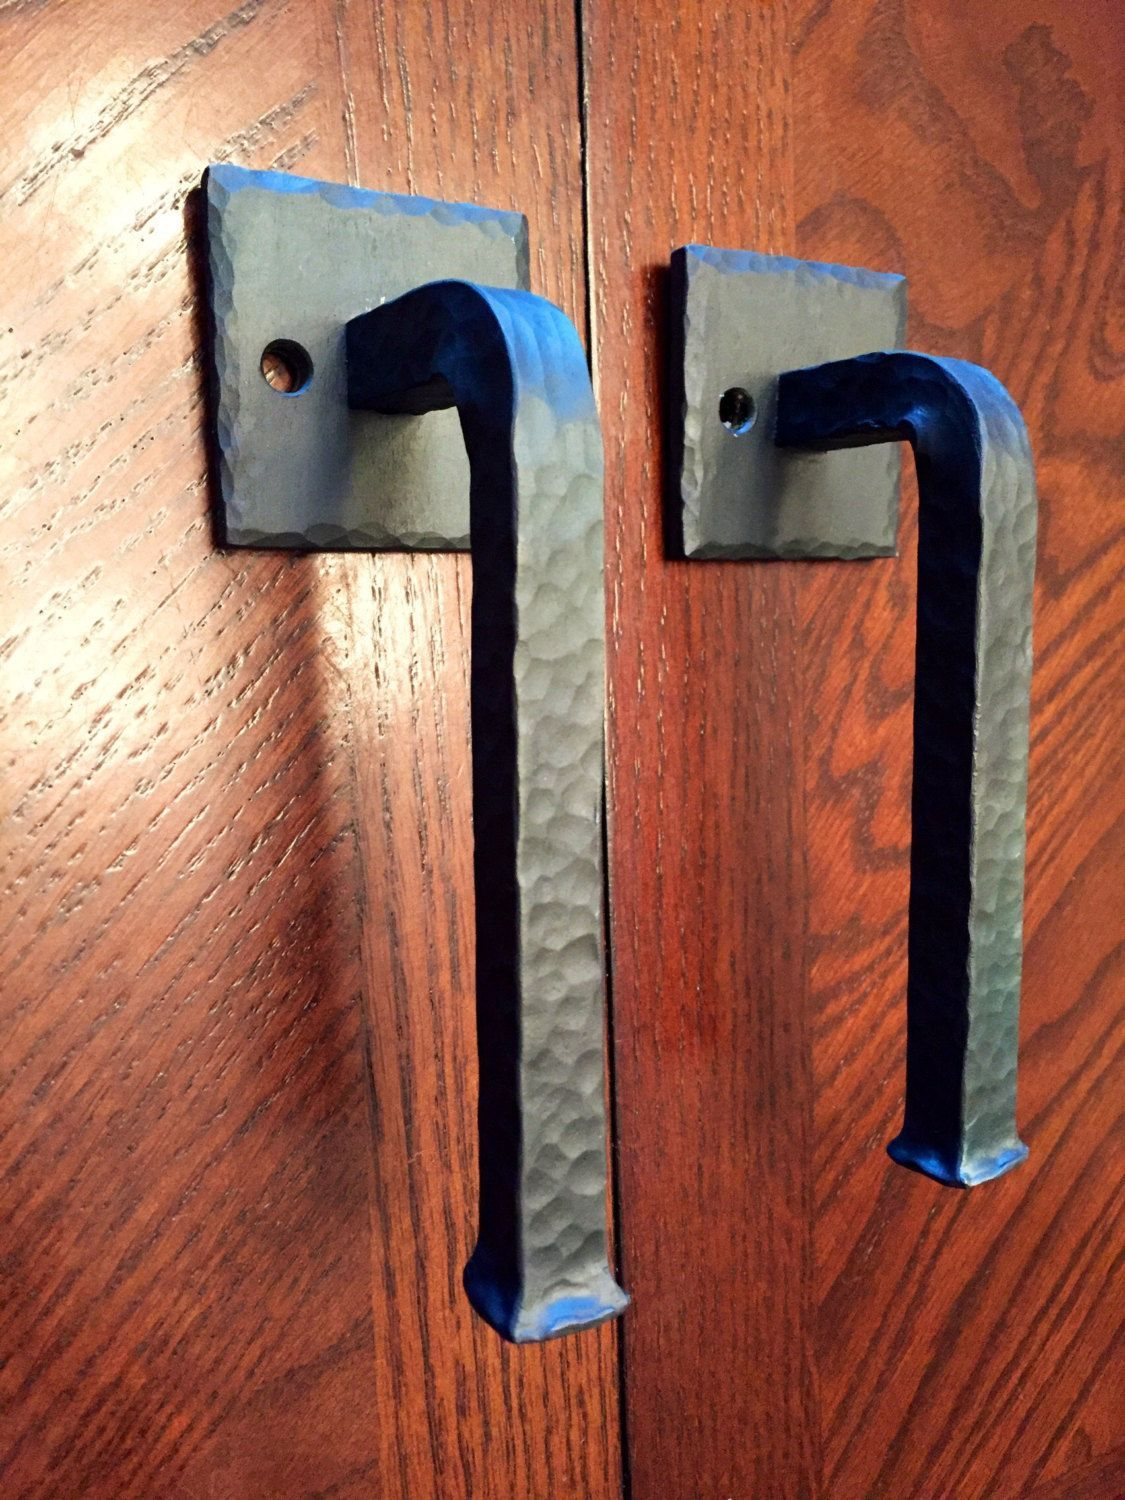 Free Shipping W/coupon, Cabinet Hardware, Hand Hammered